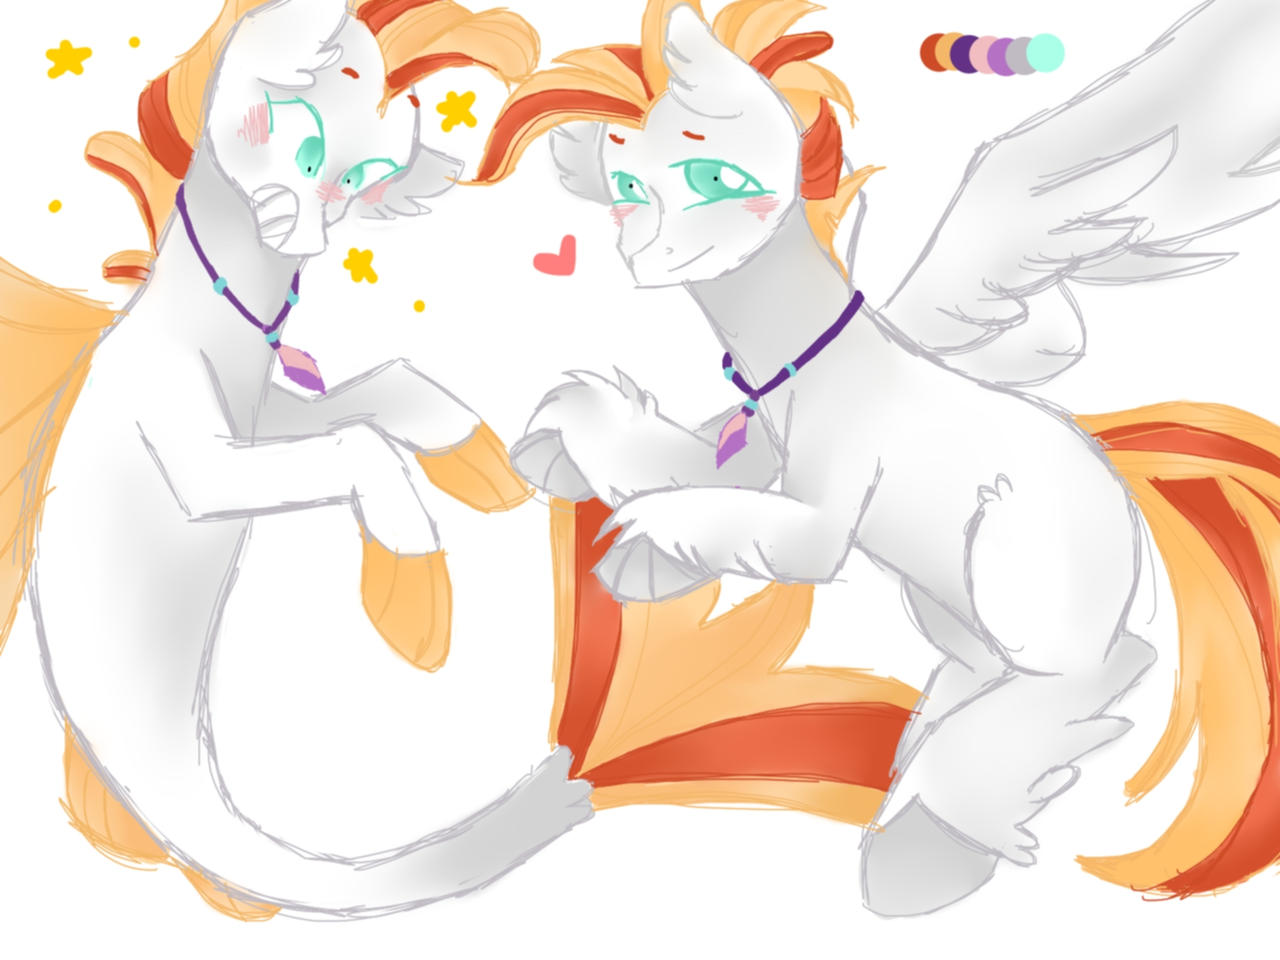 Proteus Scootaloo X Terramar By Alwaysonlin3s On Deviantart Zerochan has 56 scootaloo anime images, fanart, and many more in its gallery. proteus scootaloo x terramar by